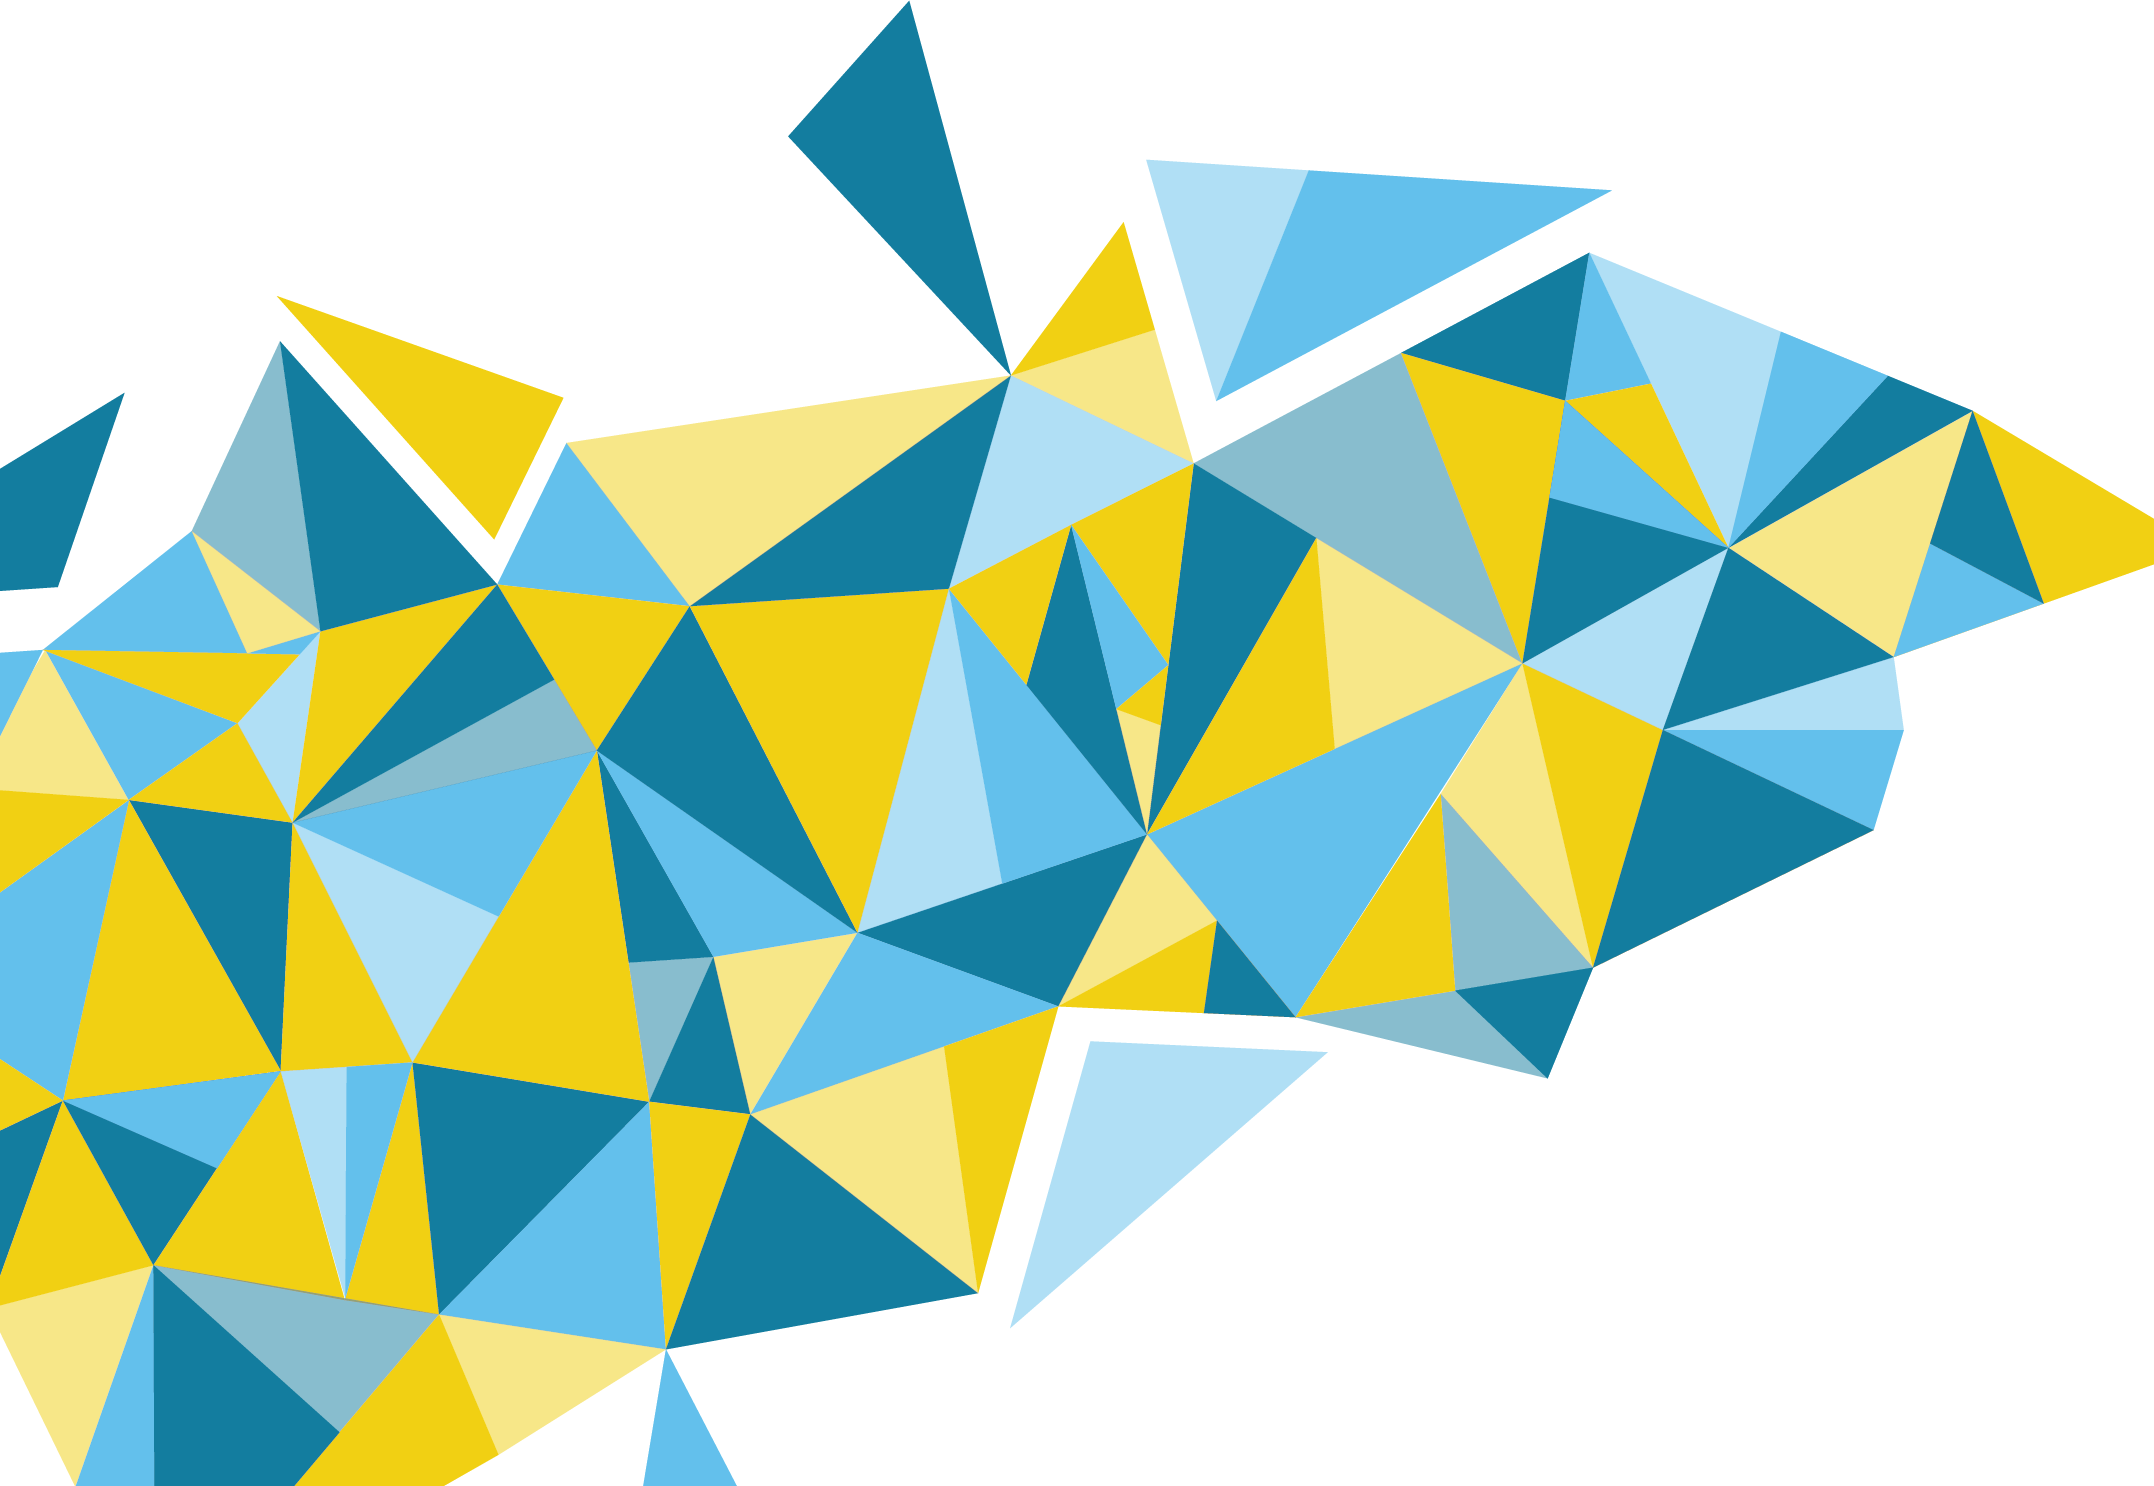 Geometric designs png. Tips for working